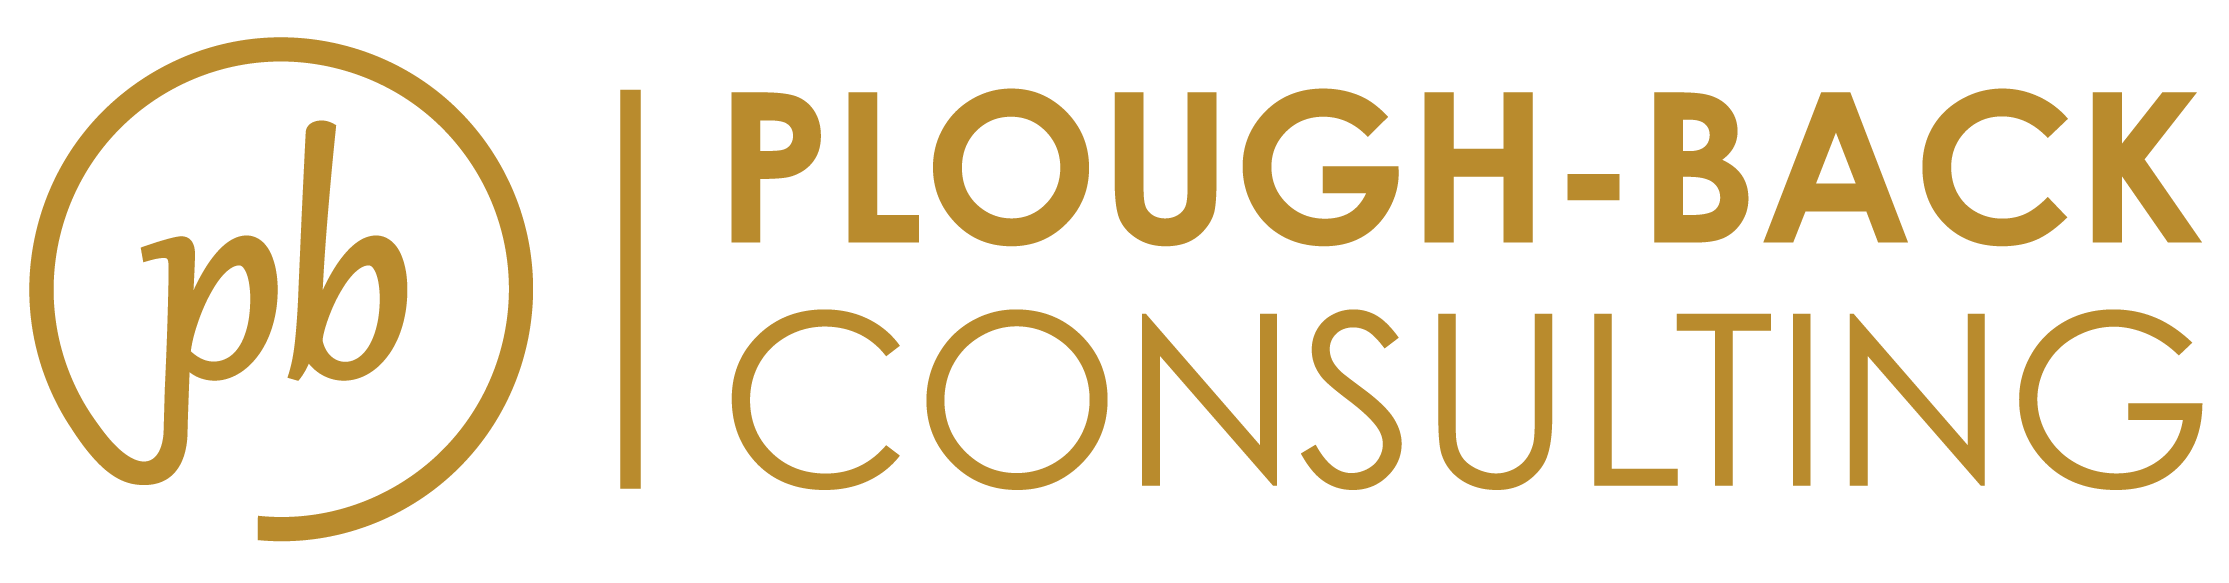 Plough-Back Consulting